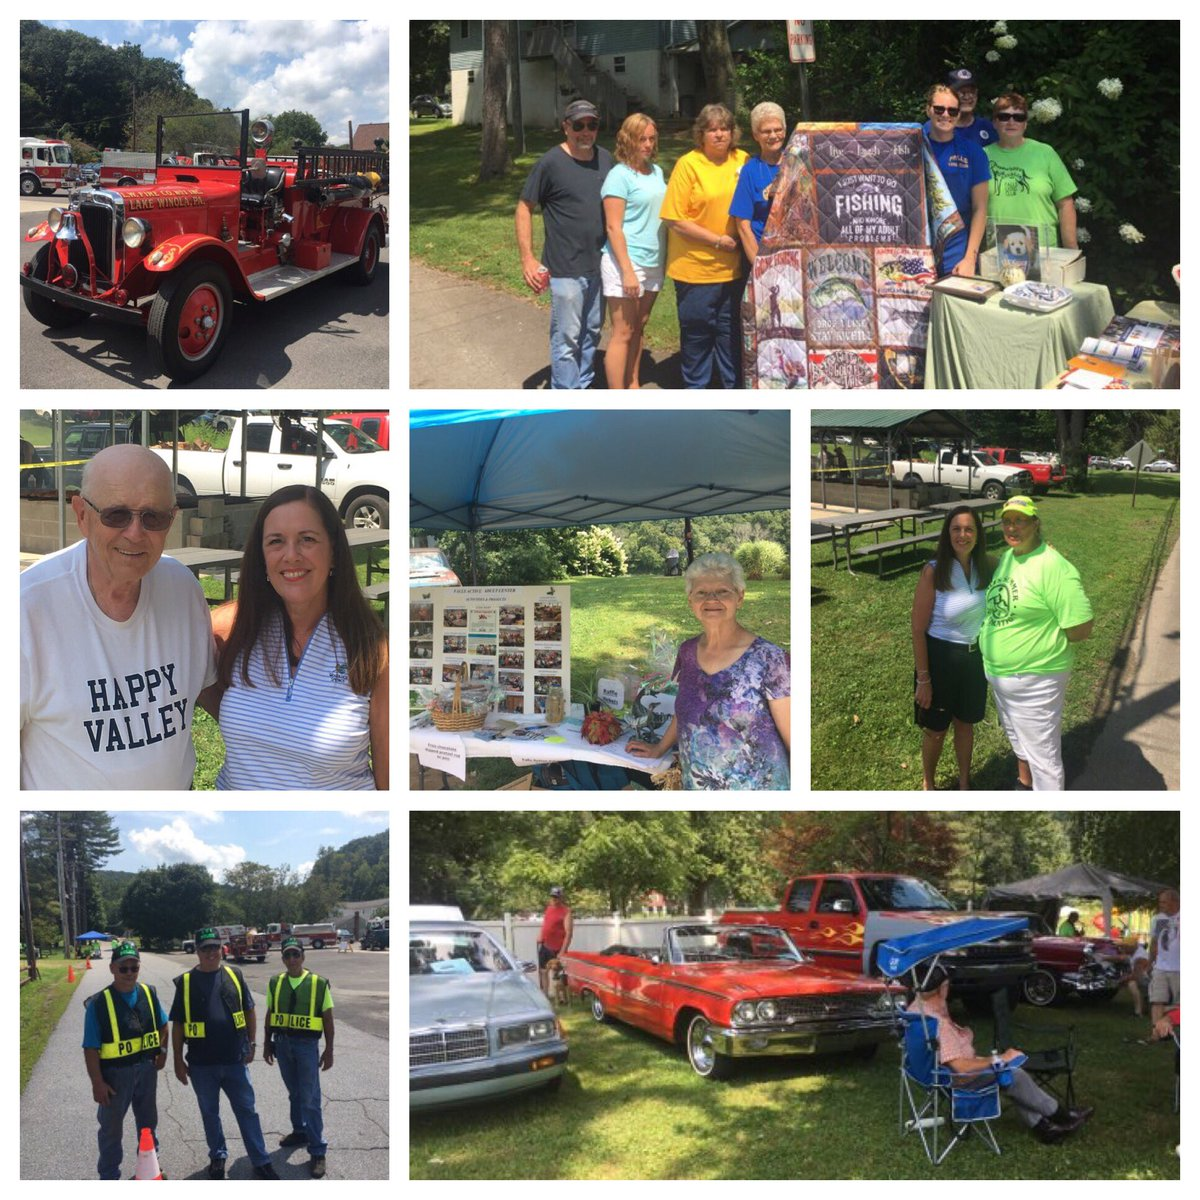 Picture perfect day for the Falls Community Festival with @lionsclubs chicken BBQ, car show, vendors & more.